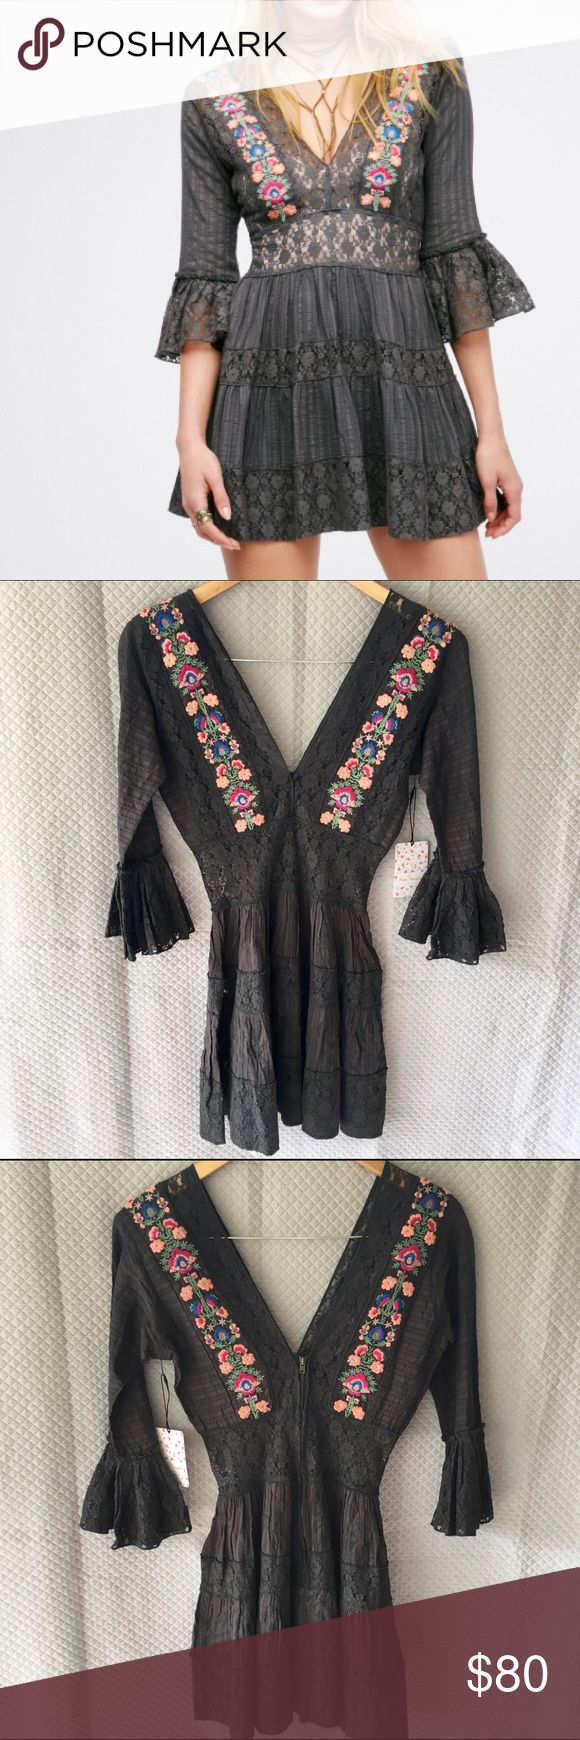 Free People antiquity lace mini dress Beautiful lace dress with floral embroidery by FP One Free People. Color is black but it's a faint greenish-black. See photo for more details on the dress!  New with tags. Free People Dresses Mini